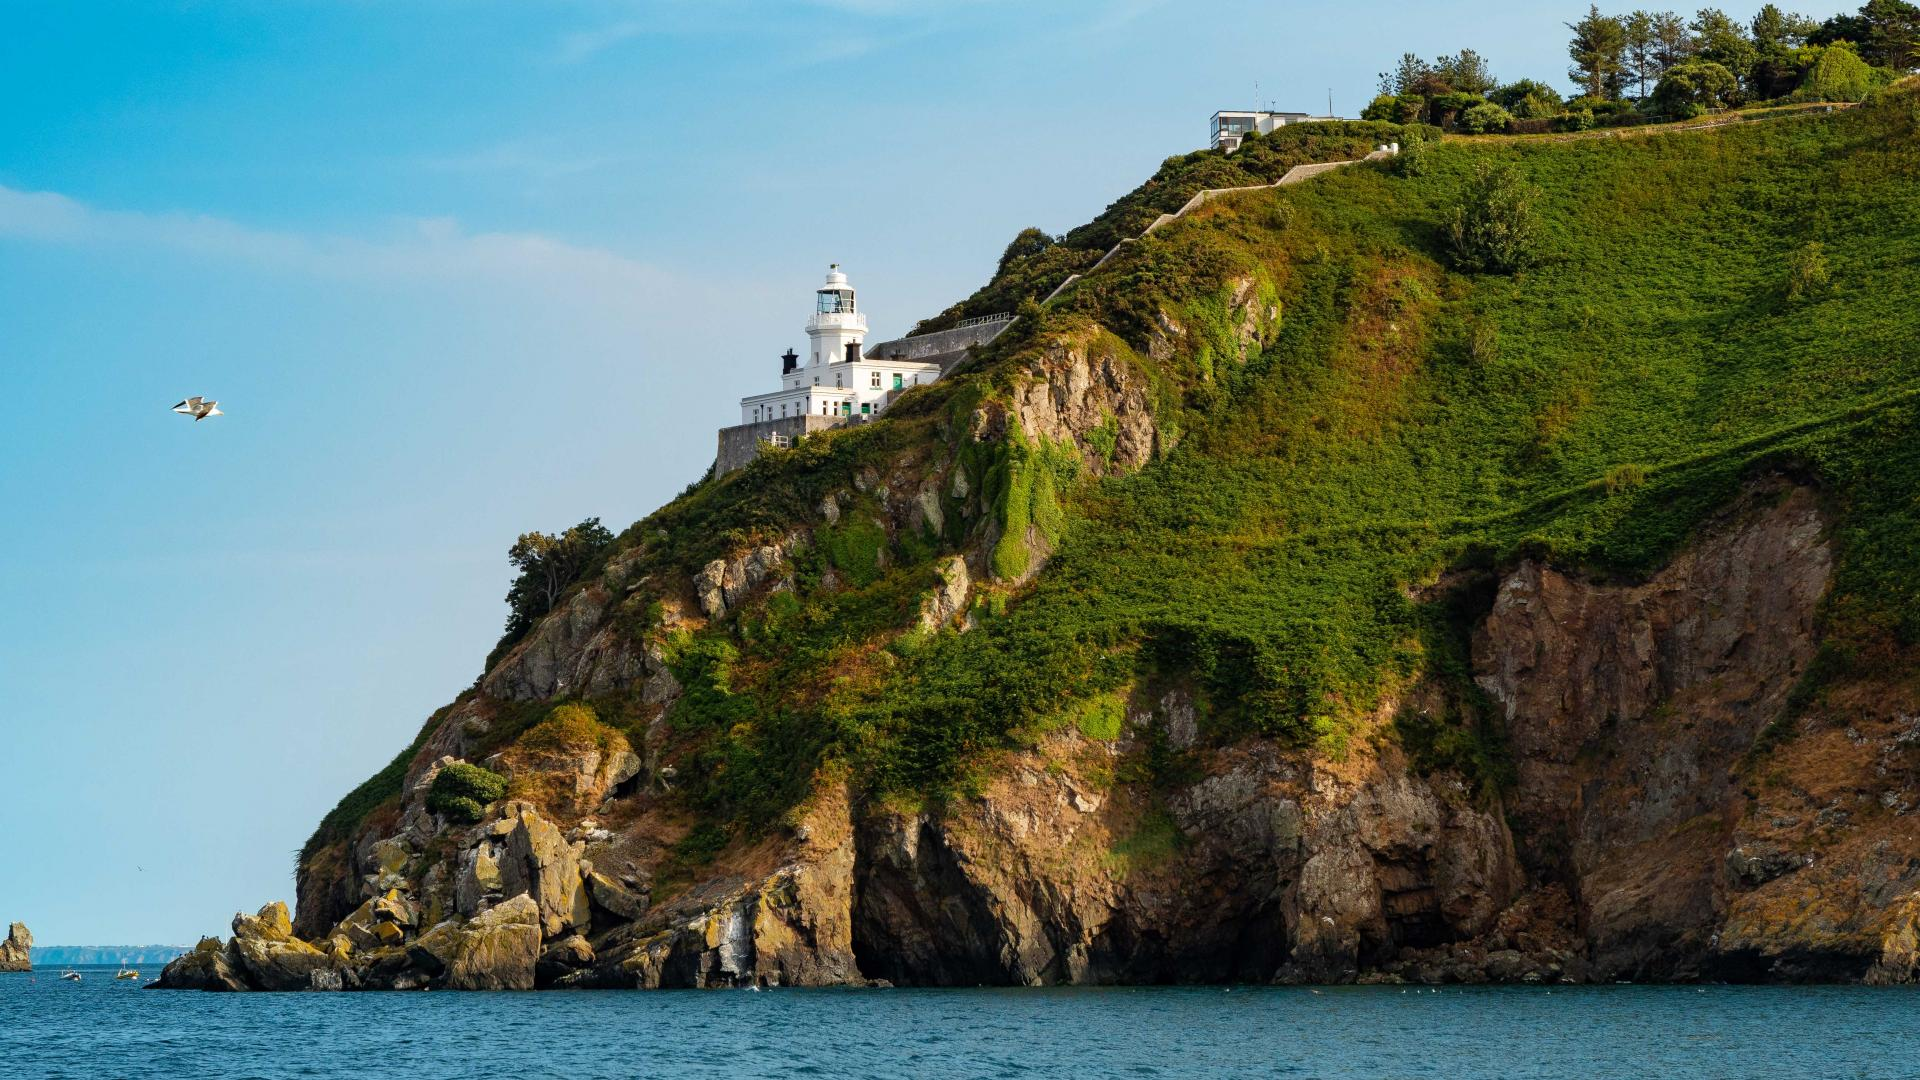 History of salt and pepper: the island of Sark